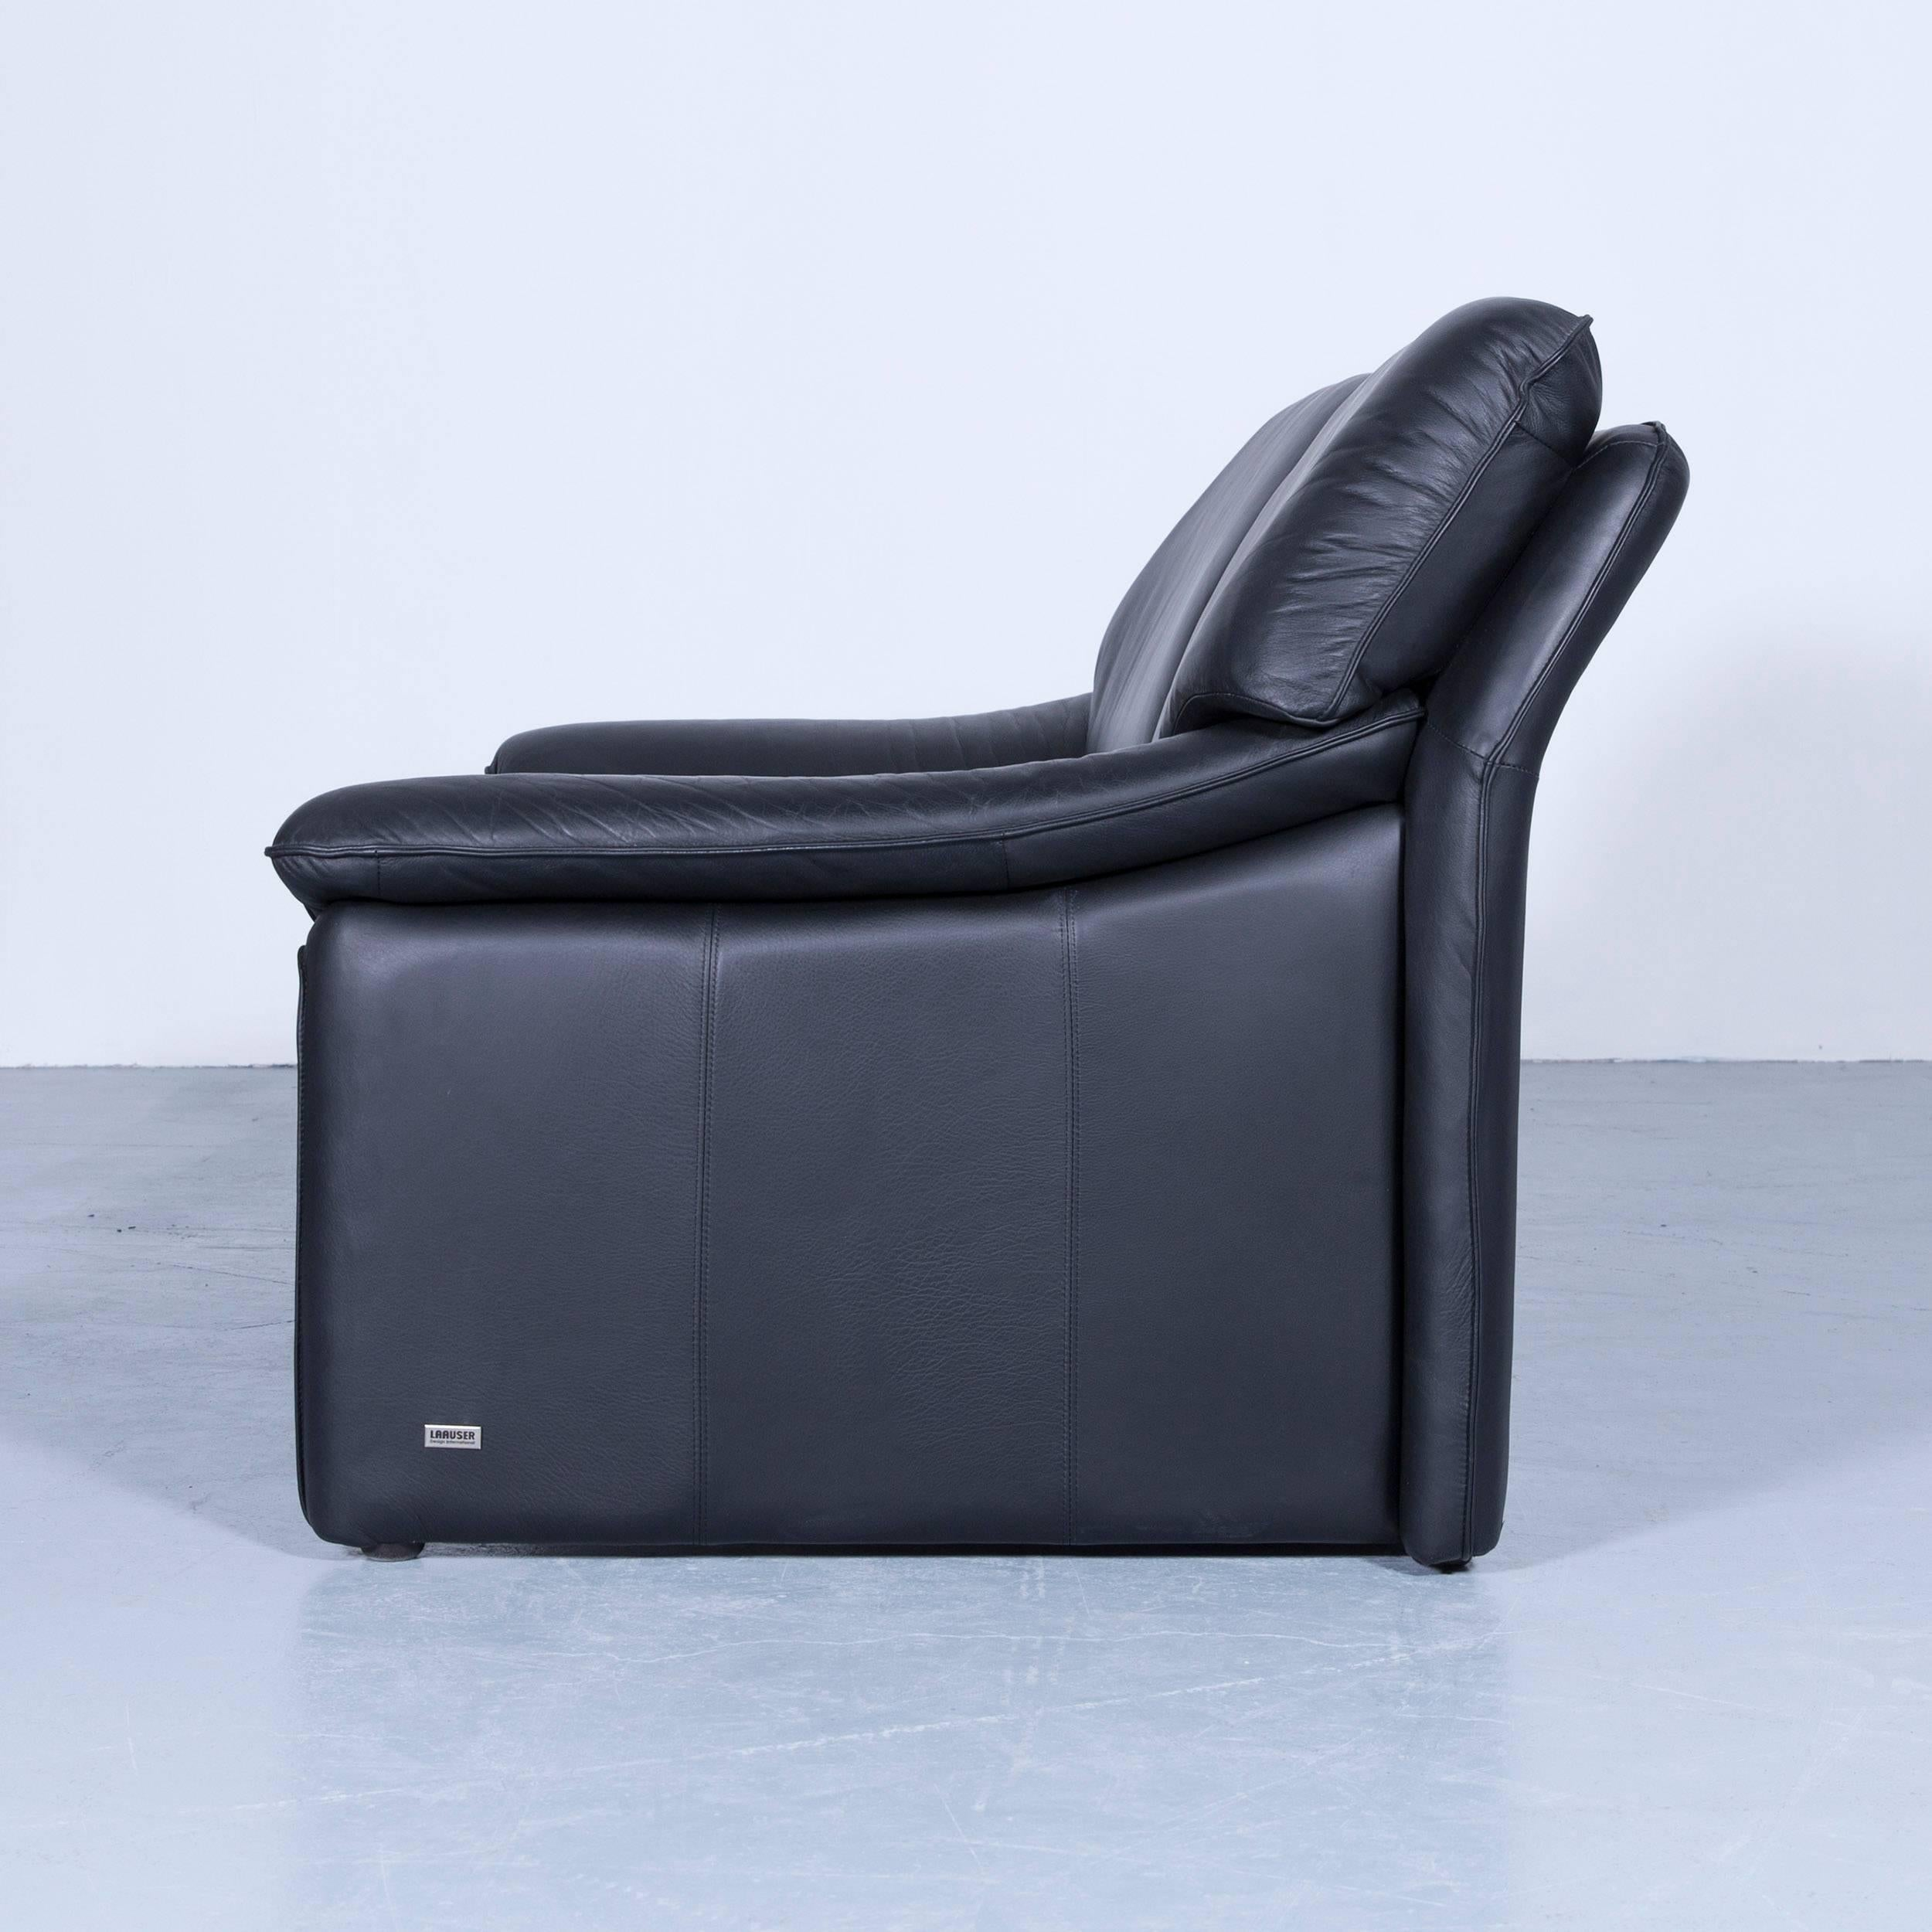 Laauser Atlanta Designer Sofa Leather Black Two Seat Couch At 1stdibs